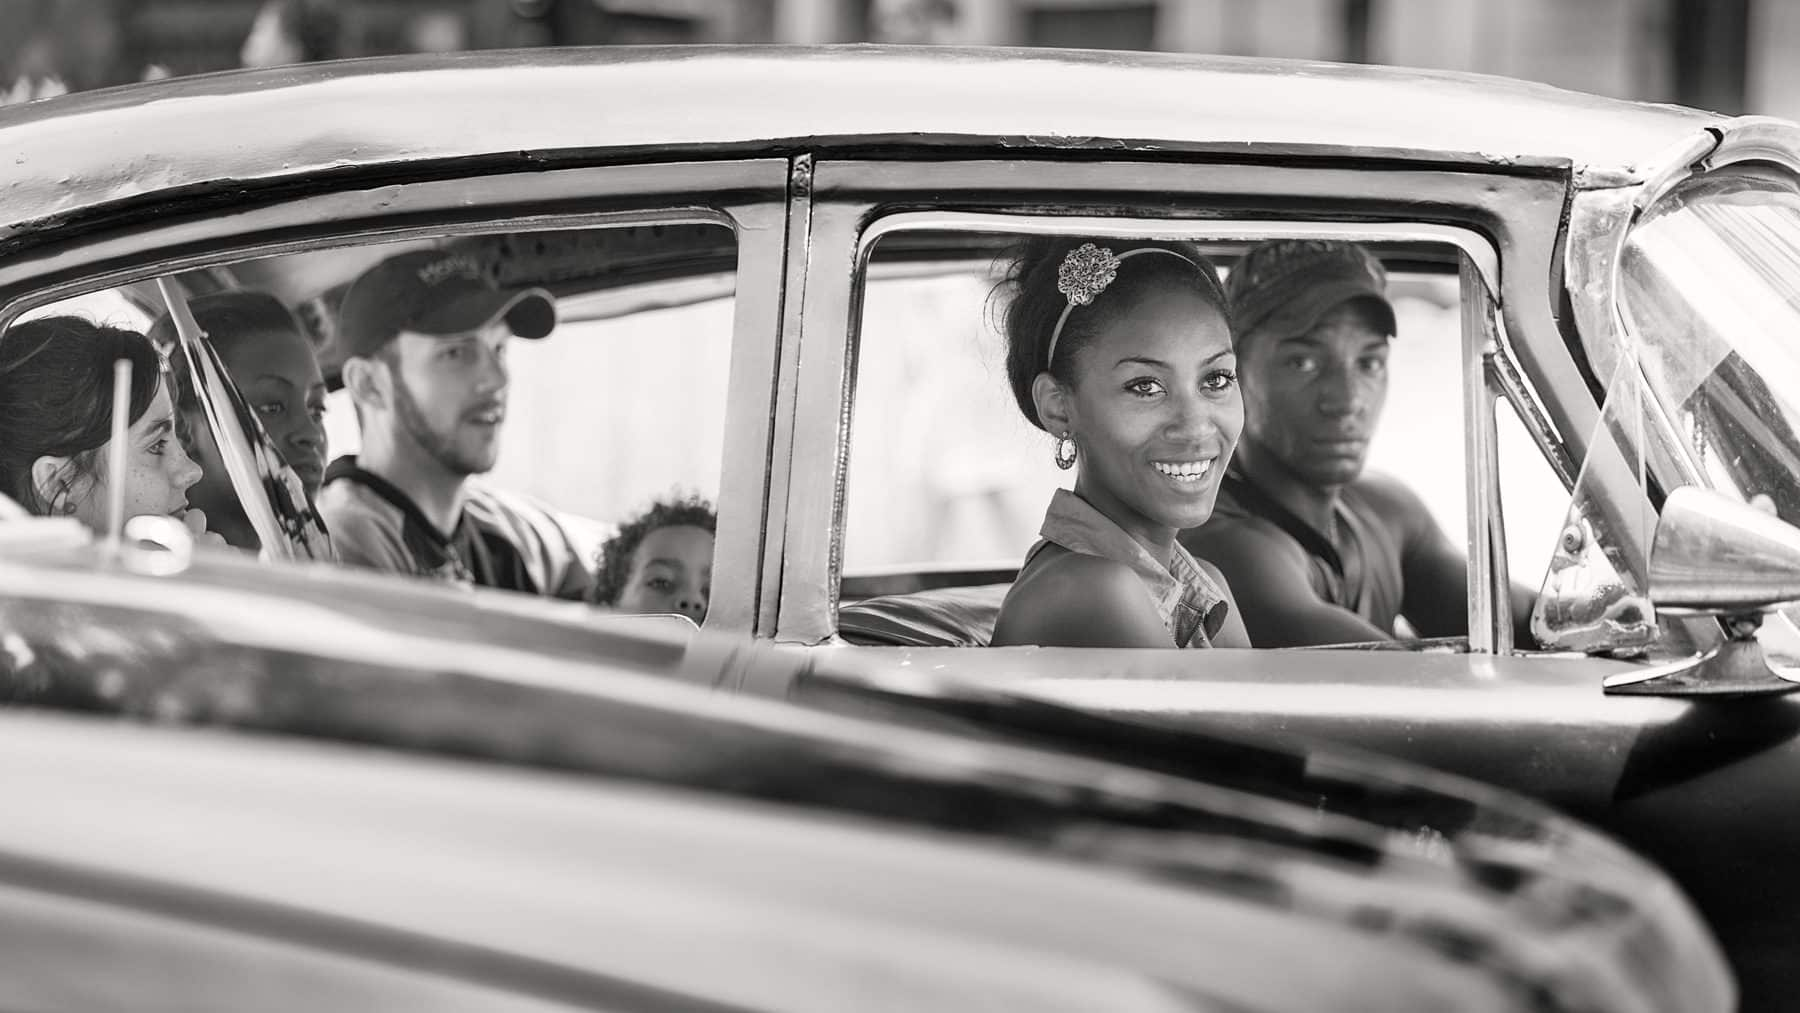 Cuba Havanna Monte Street.Traffic jam - a perfect moment to photography the various scenery. She smile to someone - i don't no who. But the driver and the little kid discoverd me … Copyright © by Gerry Pacher